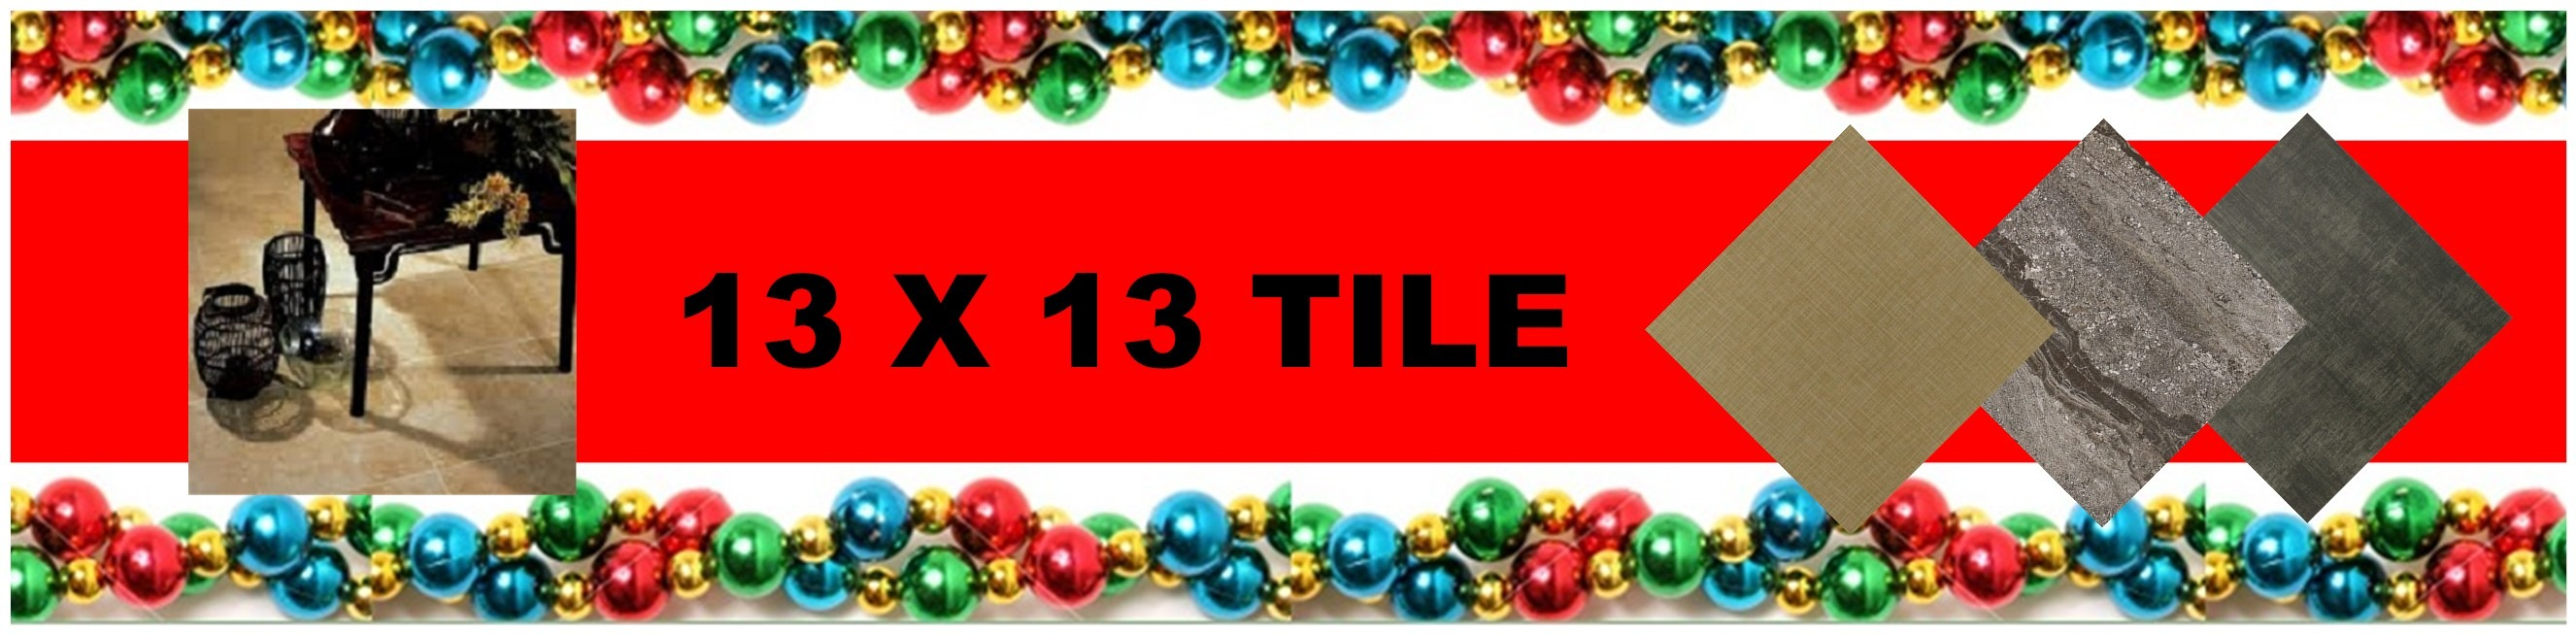 CHRISTMAS 13 X 13 TILE HEADER